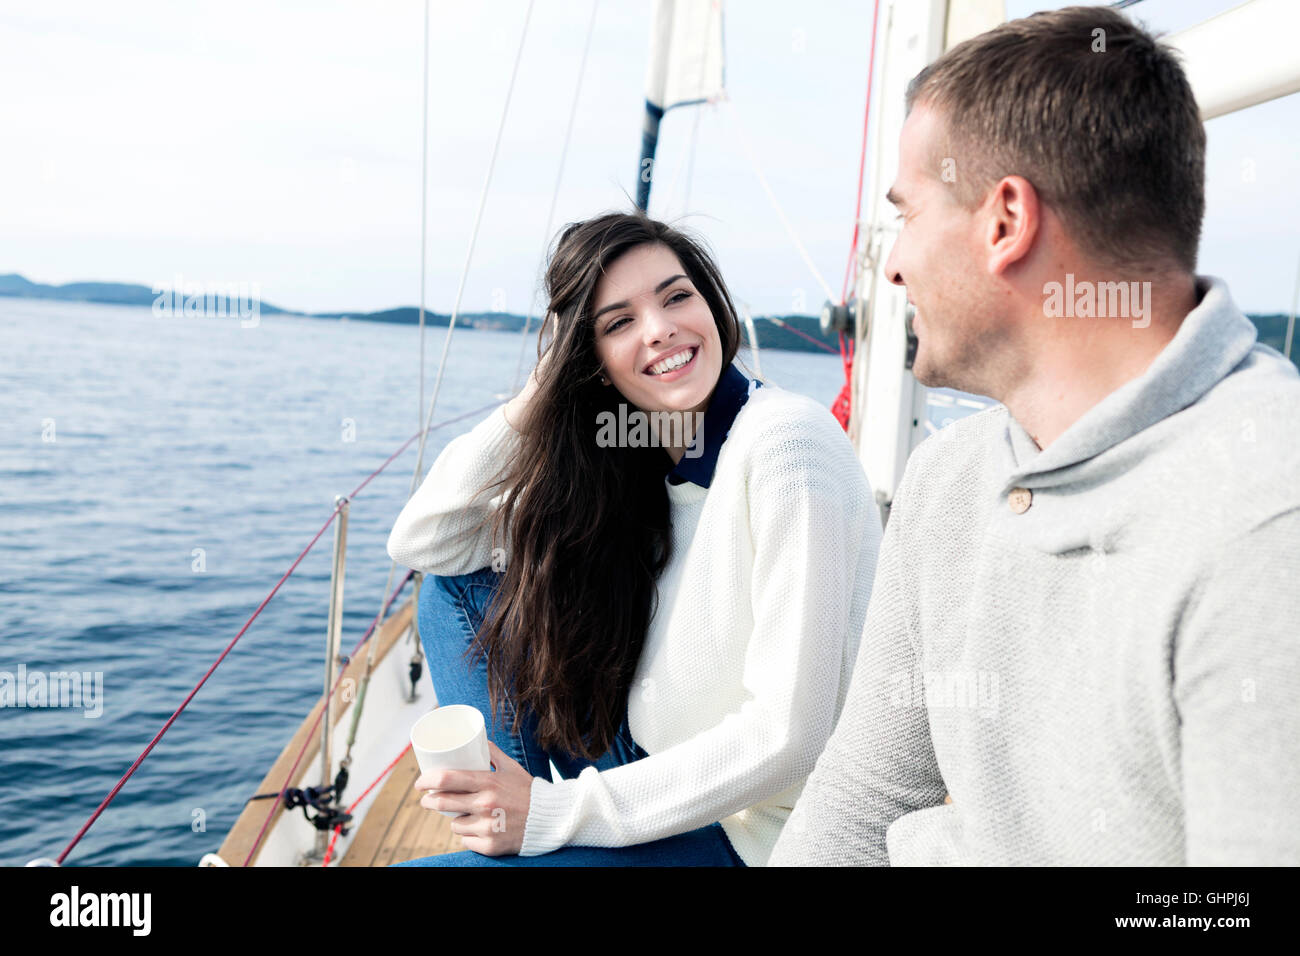 Young couple on yacht looking at each other - Stock Image